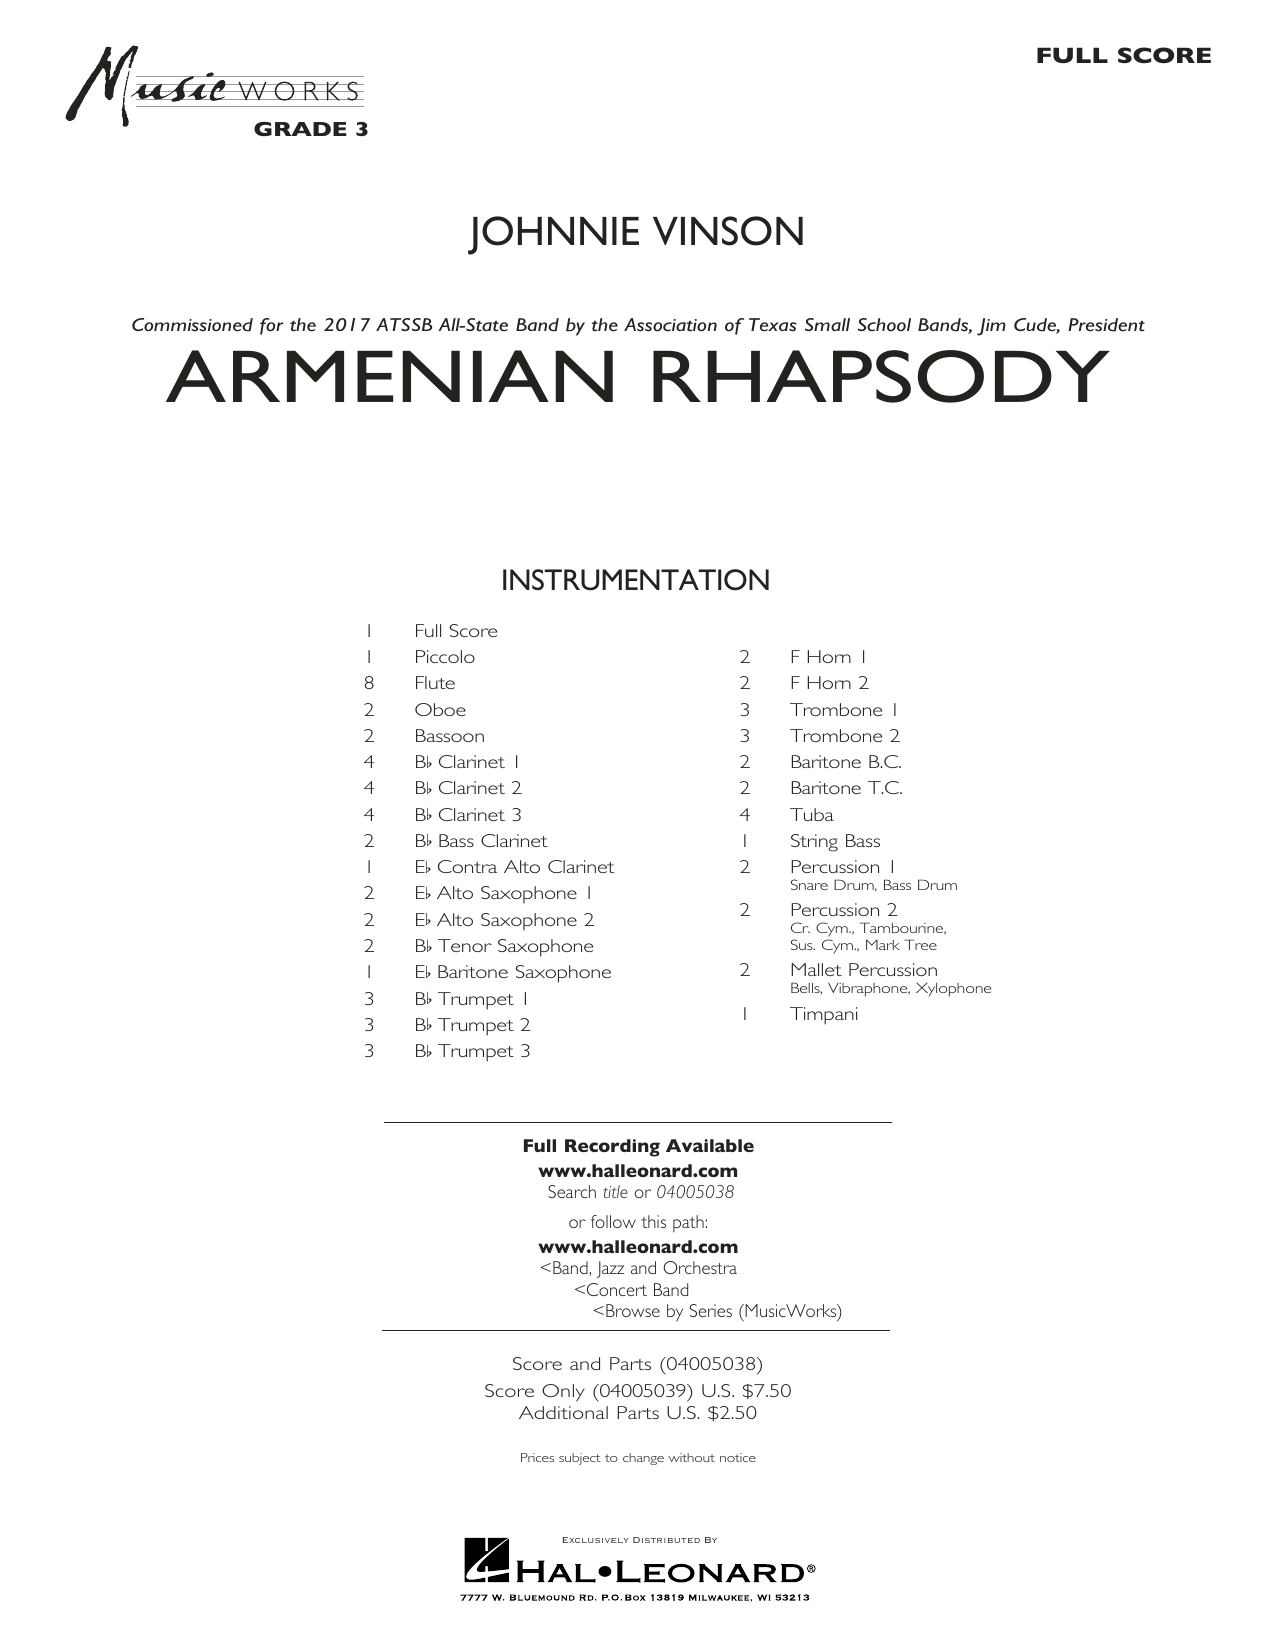 Johnnie Vinson Armenian Rhapsody - Conductor Score (Full Score) sheet music preview music notes and score for Concert Band including 31 page(s)